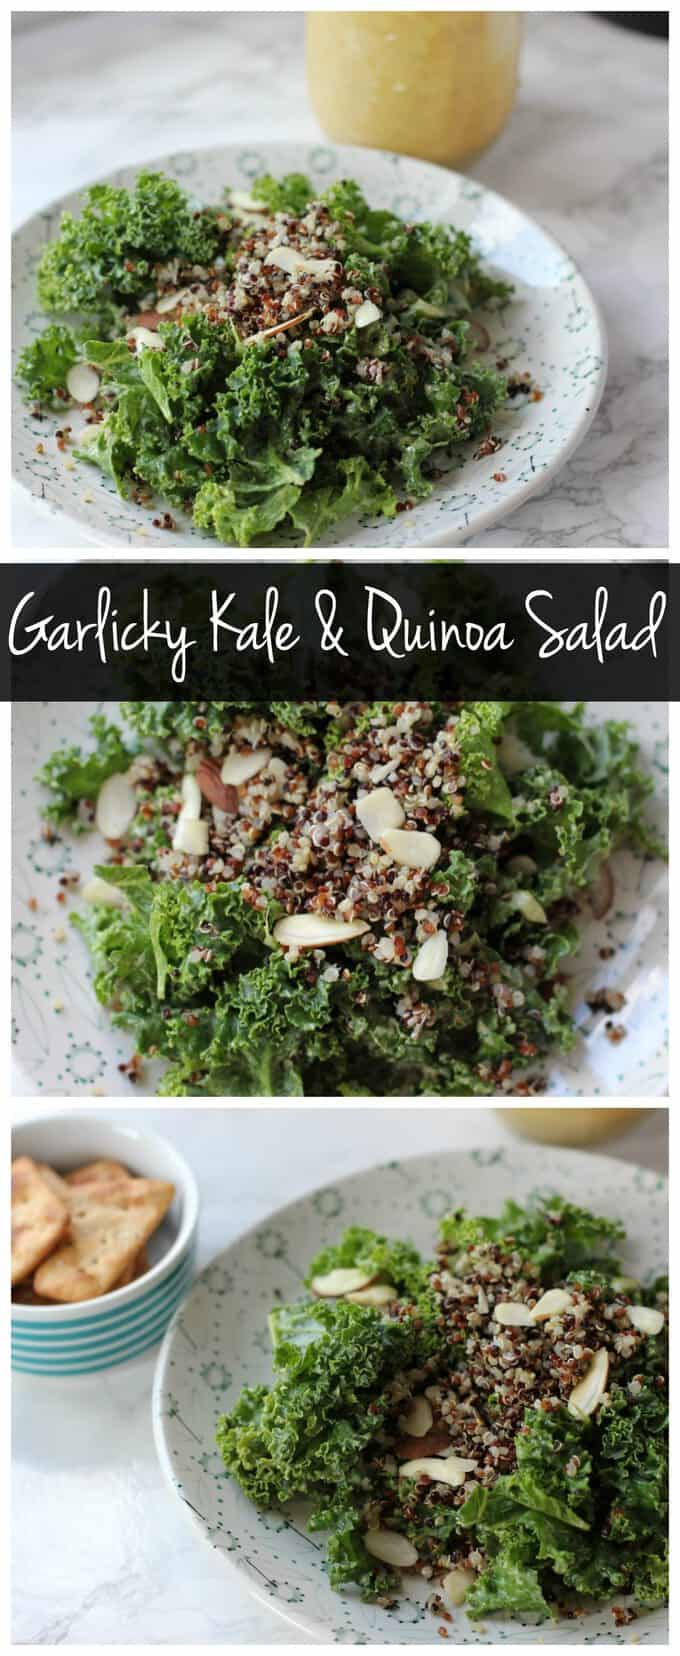 This garlicky kale and quinoa salad is vegan, gluten free, healthy, and delicious! It\'s loaded with protein and healthy fats with no oil! #salad #oilfree #vegan #glutenfree